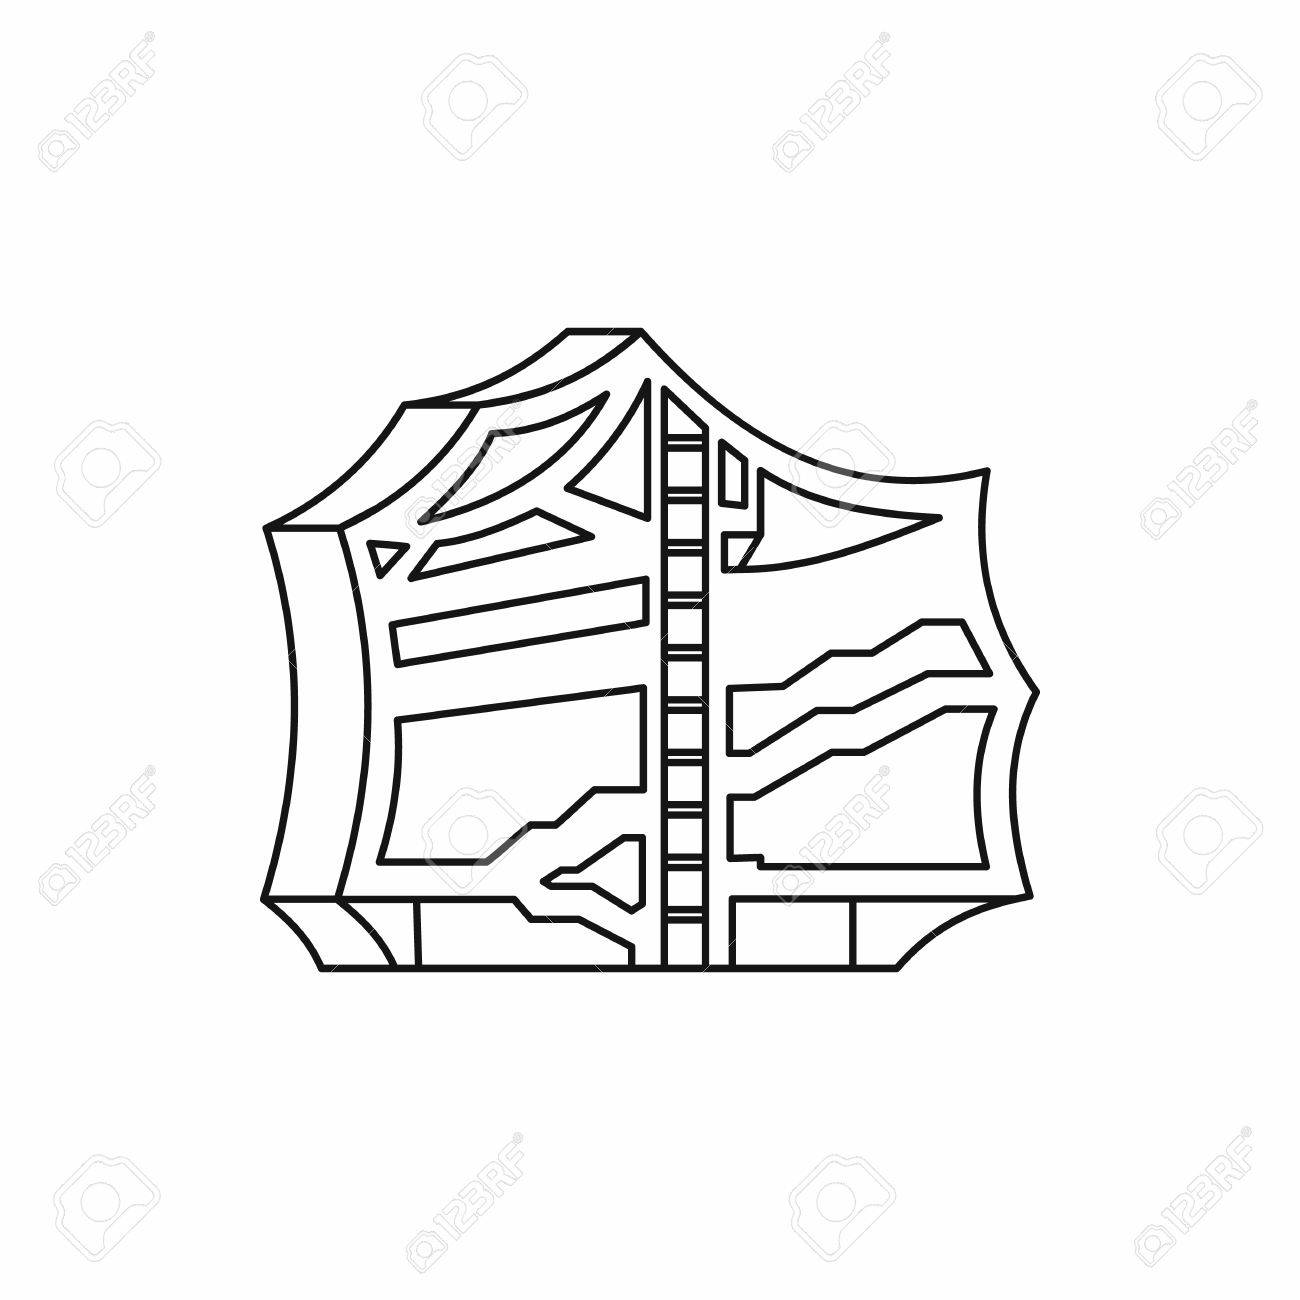 kimchi traditional korean food icon in outline style isolated Korean Market kimchi traditional korean food icon in outline style isolated on white background vector illustration stock